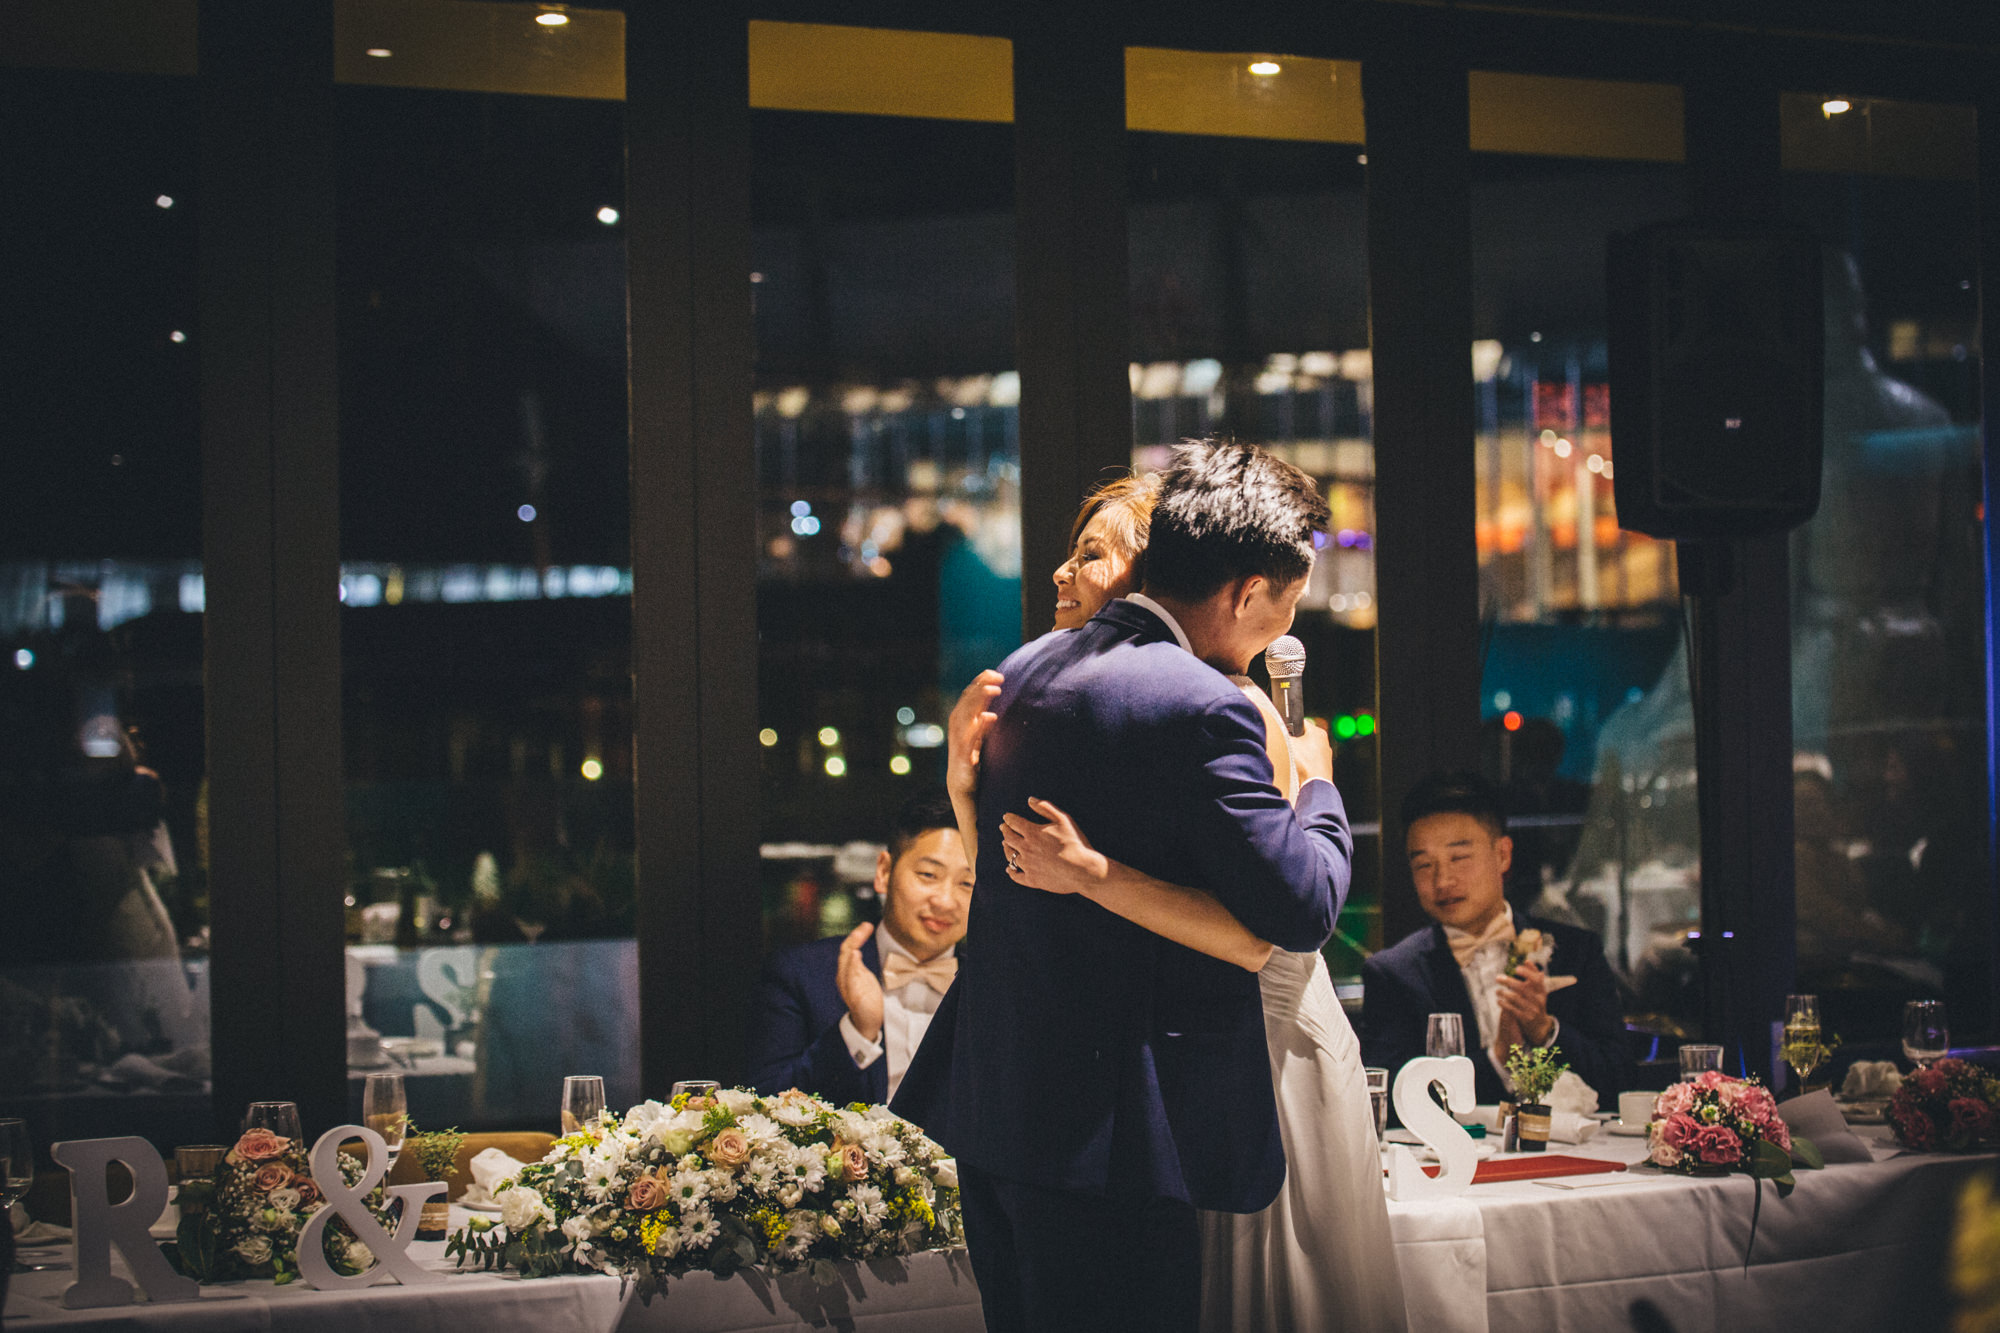 Allee & Rob - Singapore Wedding Photography (57 of 60).jpg